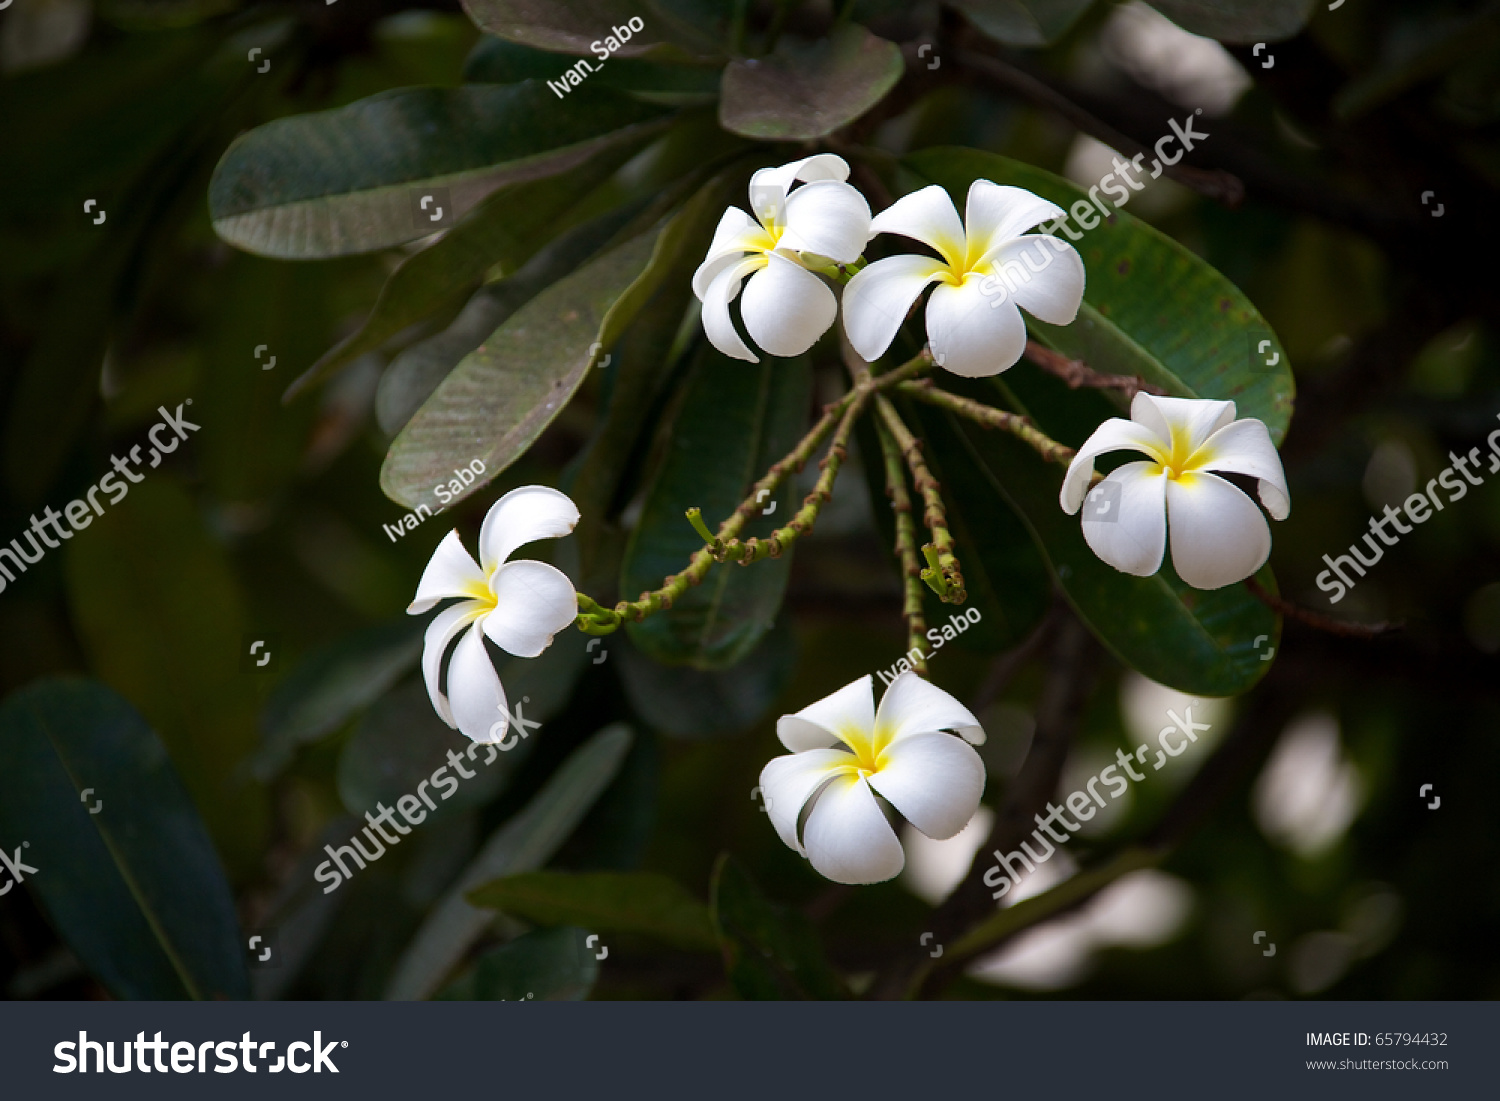 Hawaiian plumeria flowers growing on tree stock photo edit now hawaiian plumeria flowers growing on a tree izmirmasajfo